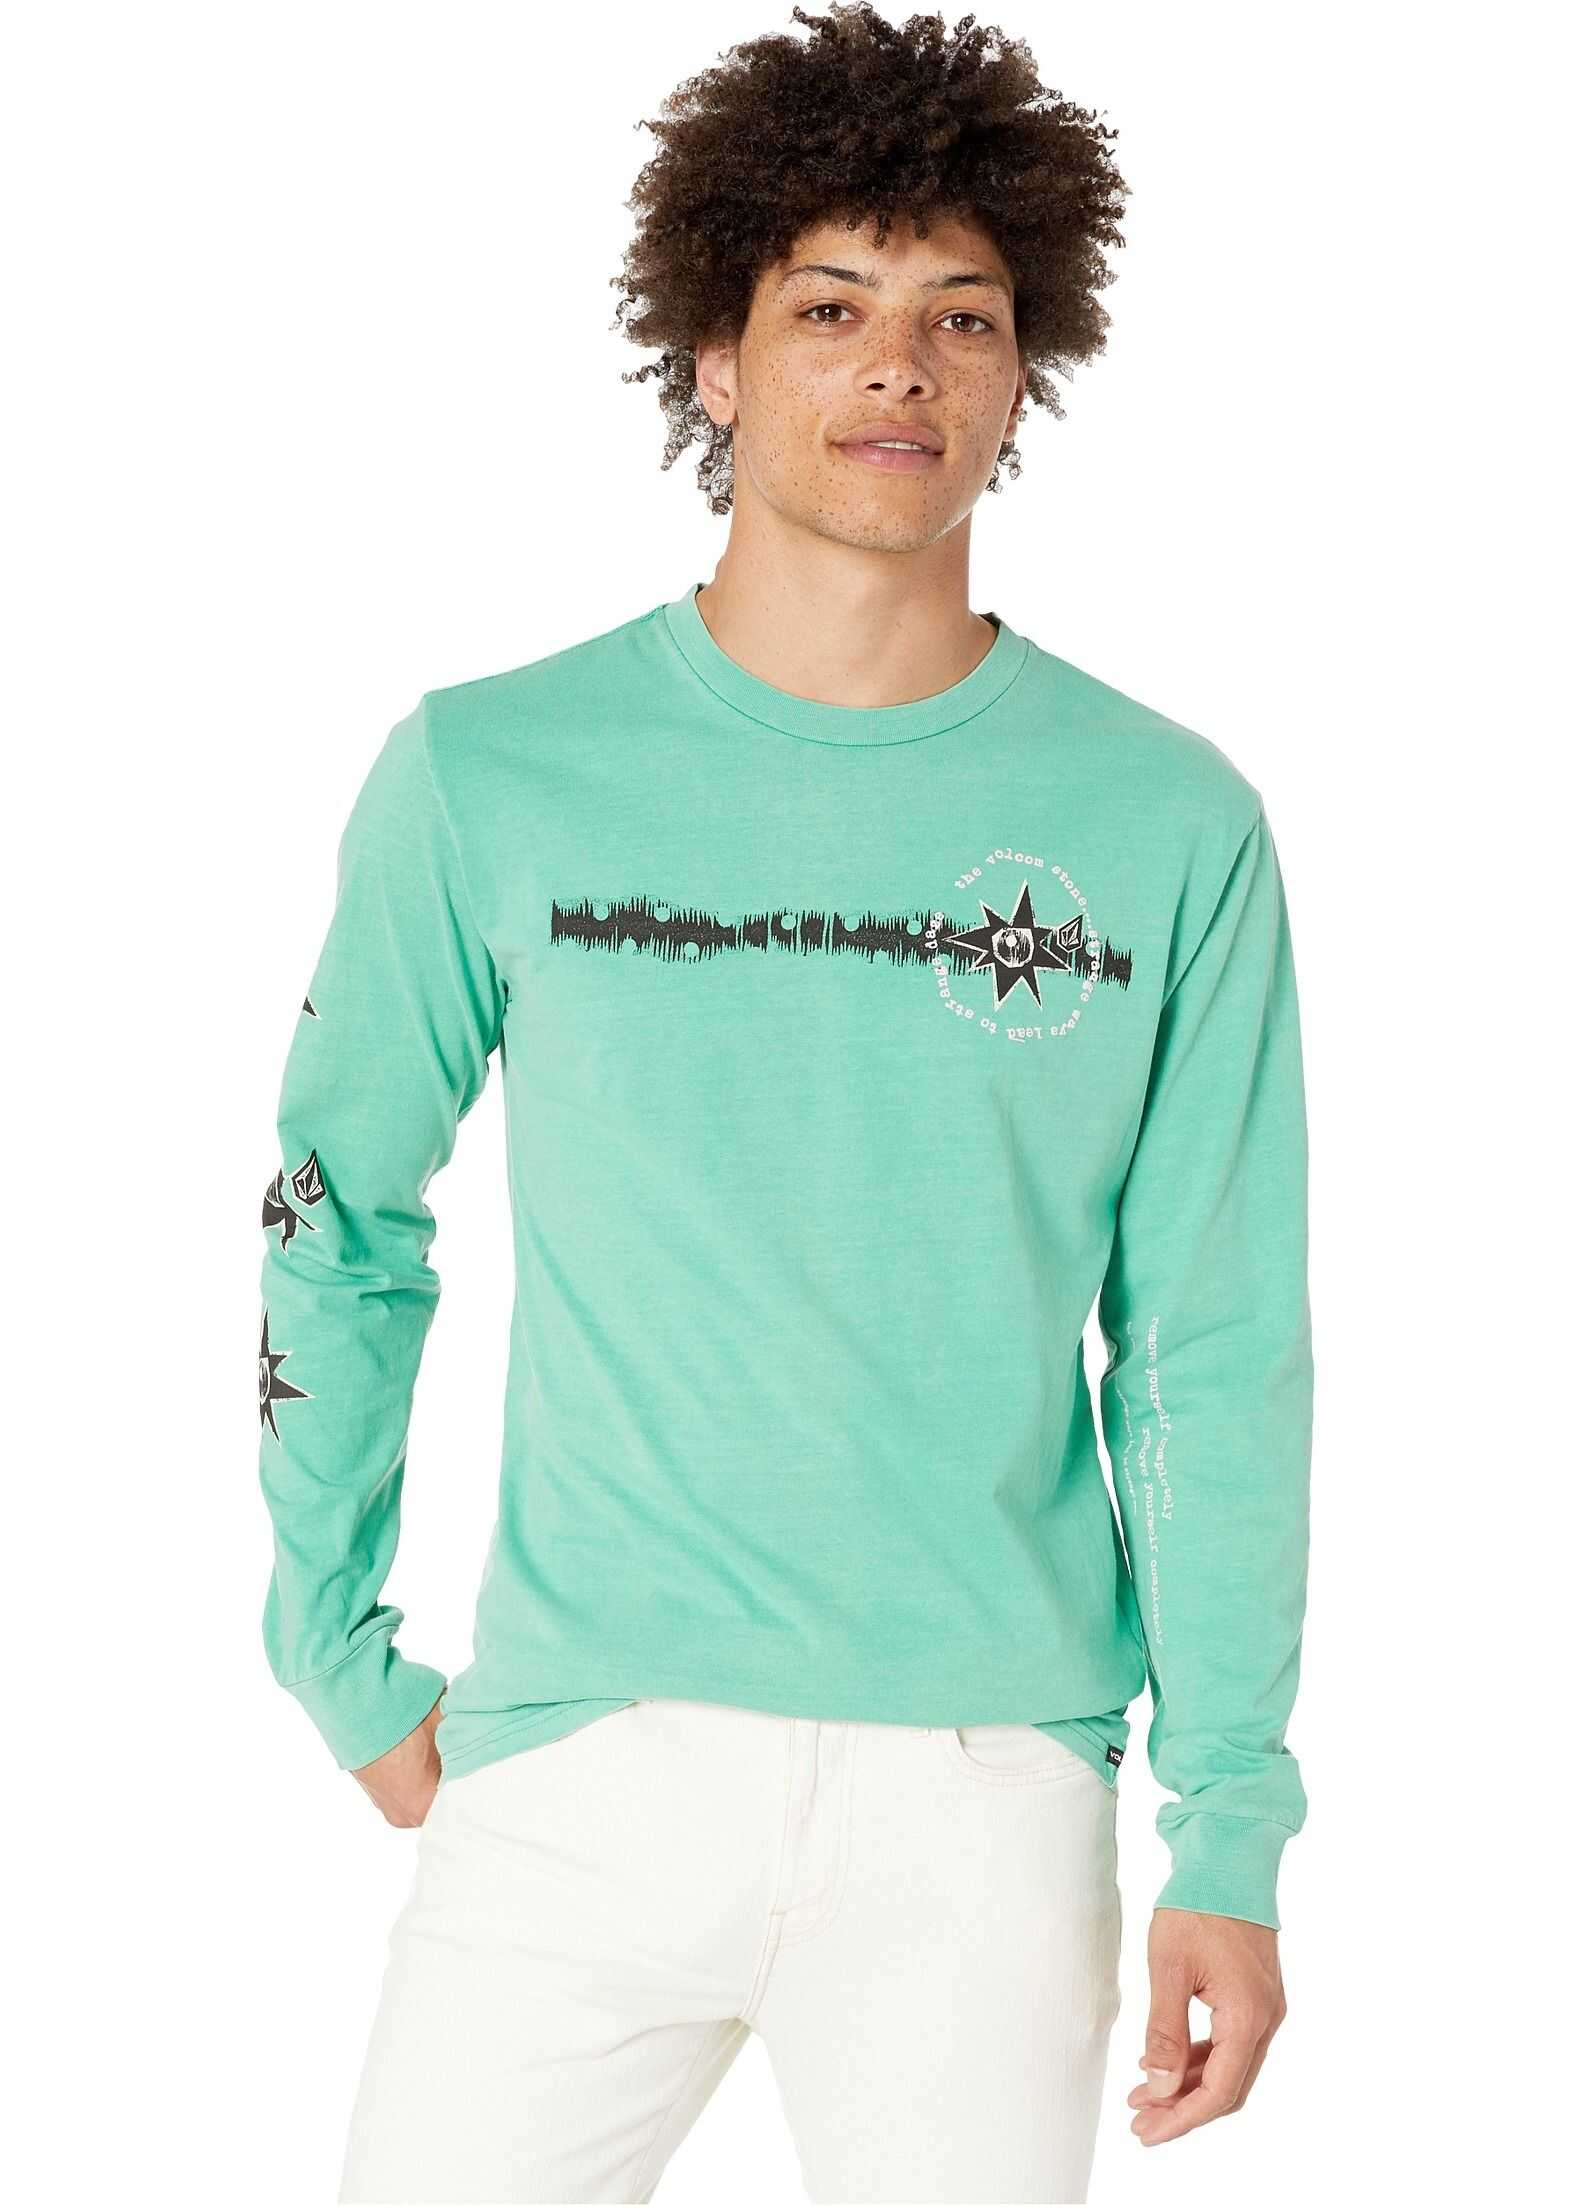 Mag Sketch Long Sleeve Tee